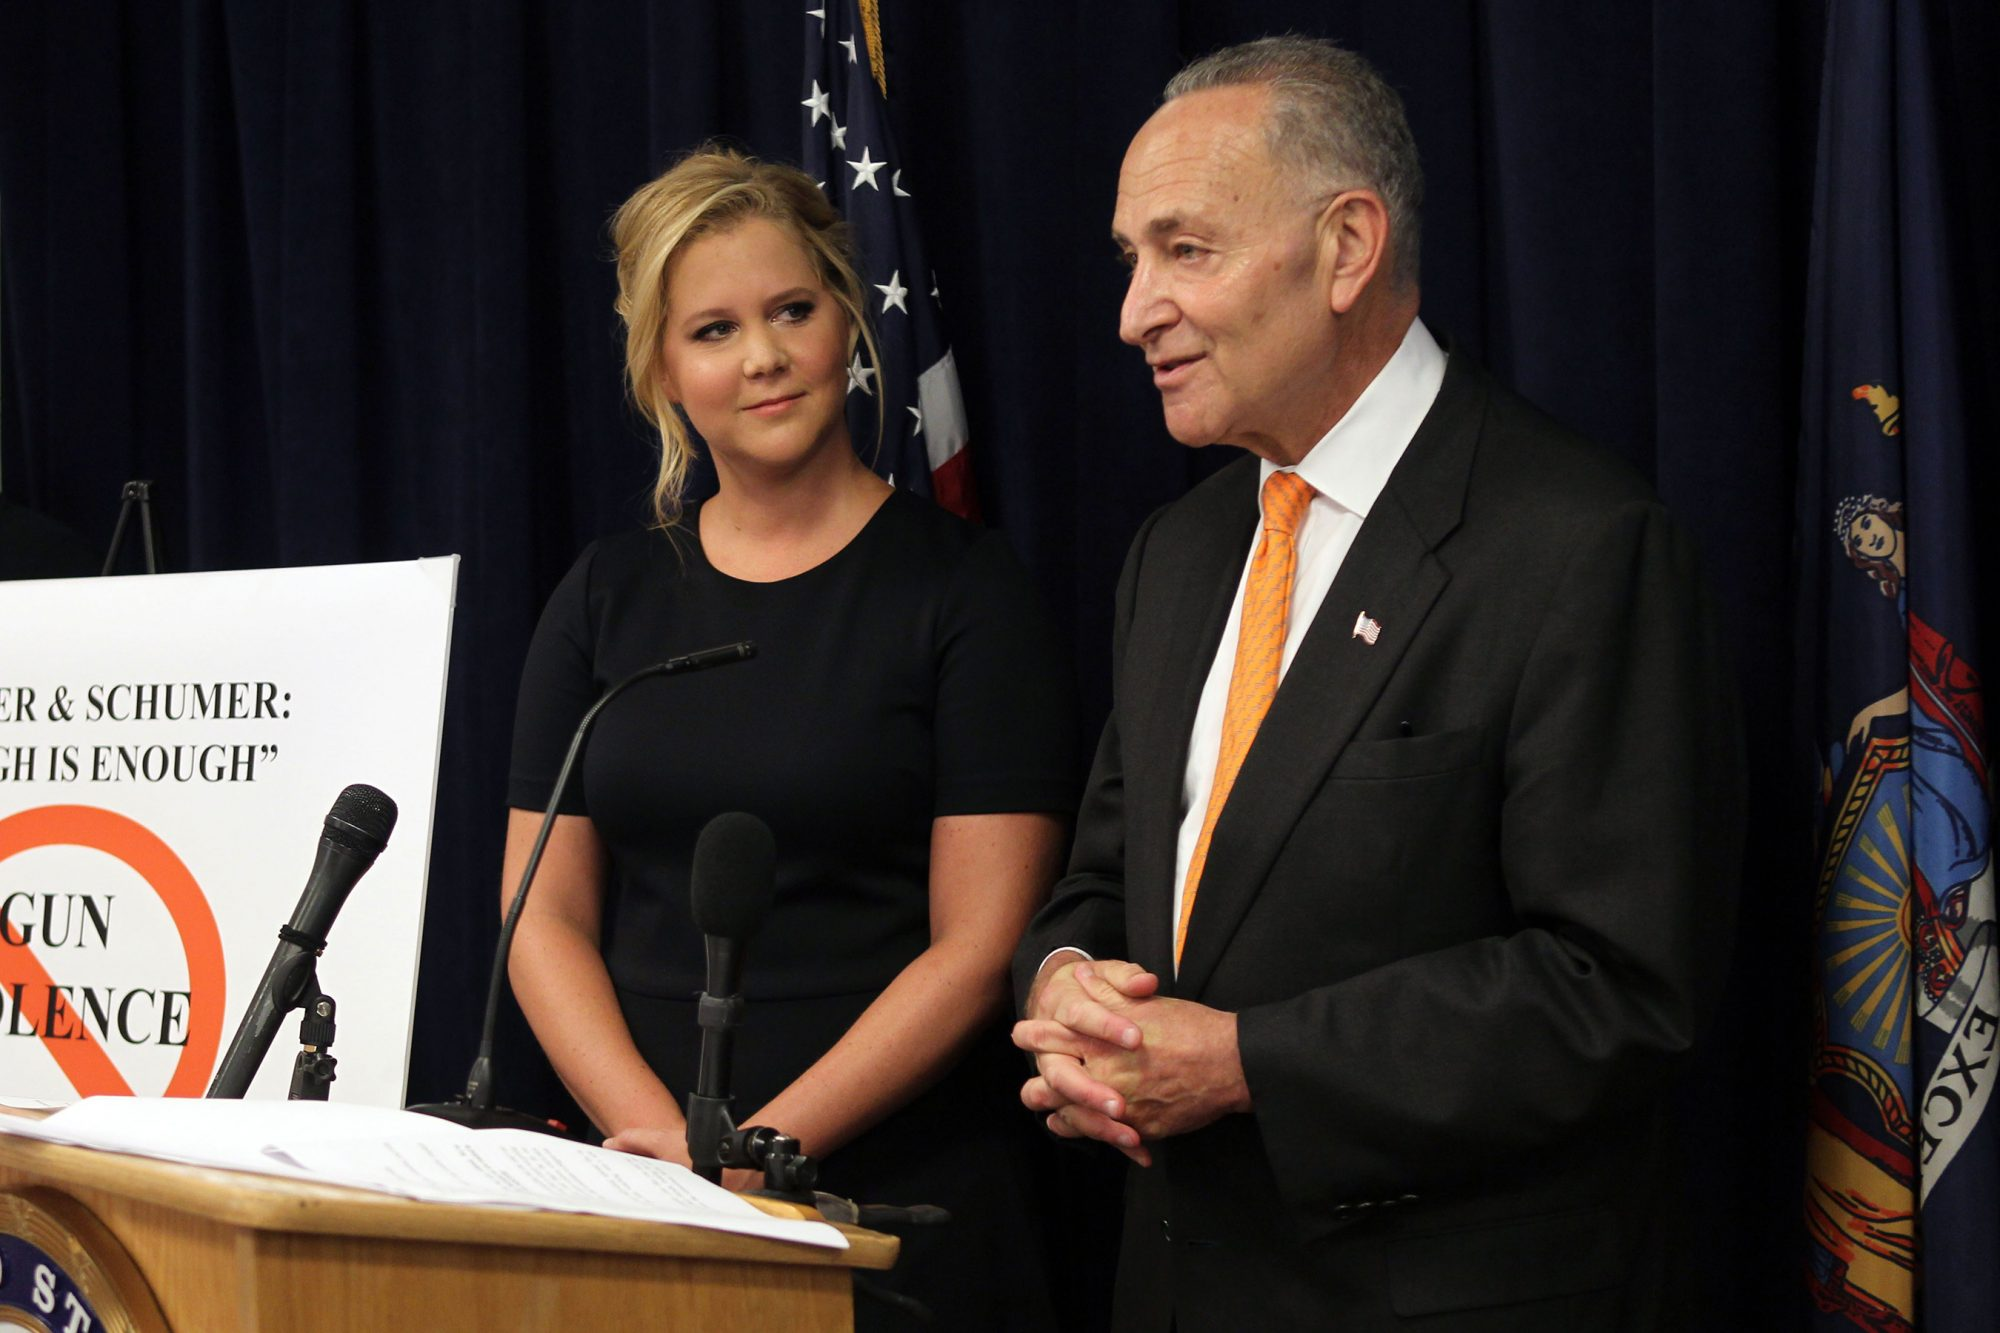 Senator Chuck Schumer And Amy Schumer Joint Press Conference Announcing Plan To Crackdown On Mass Shootings And Gun Violence